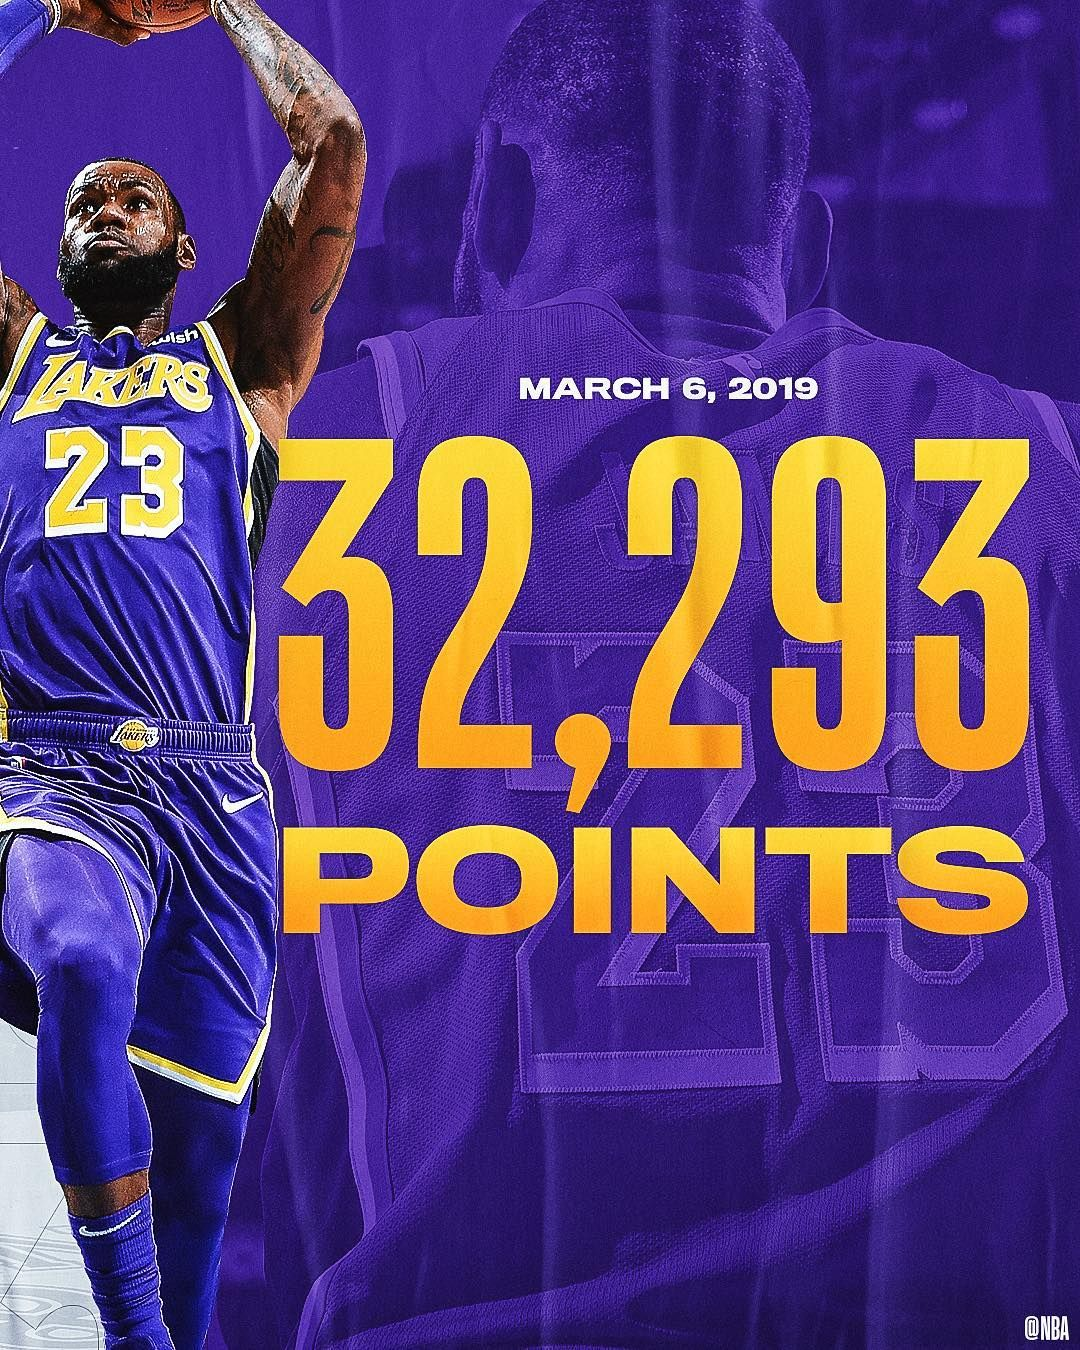 Image May Contain One Or More People And Text Lebron James Stats King Lebron James Lebron James Lakers